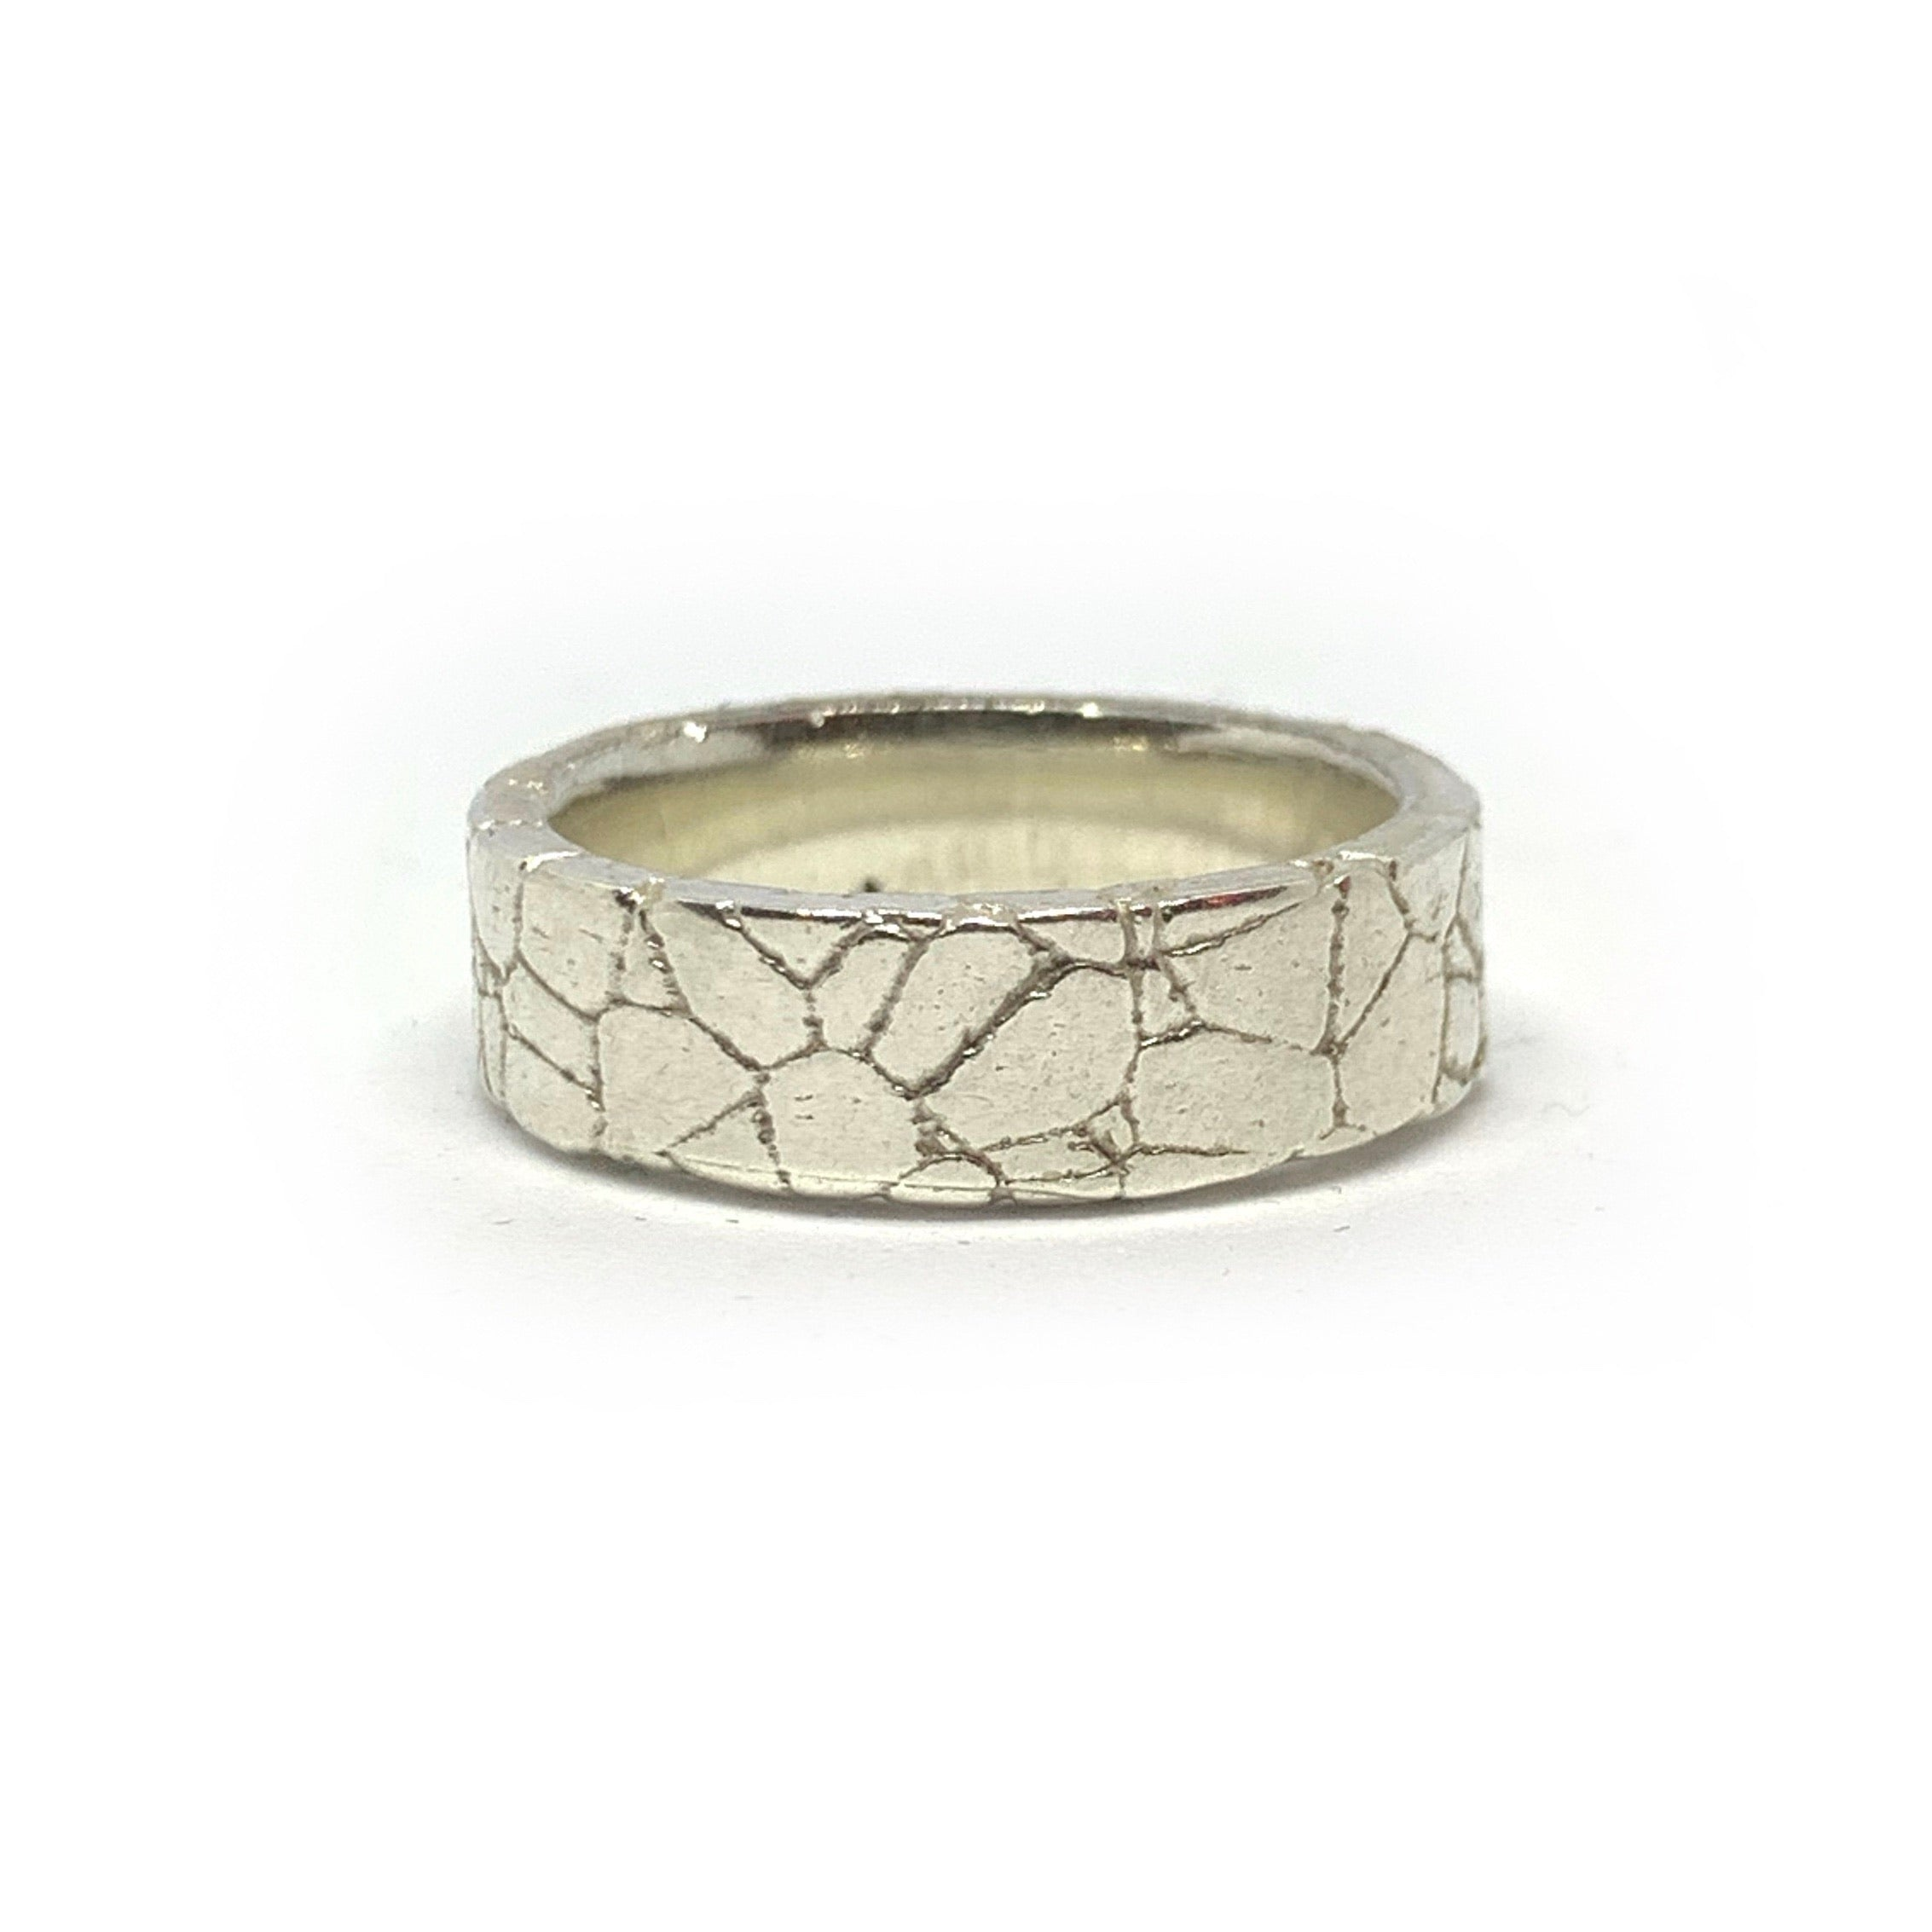 STERLING SILVER CRACKED RING